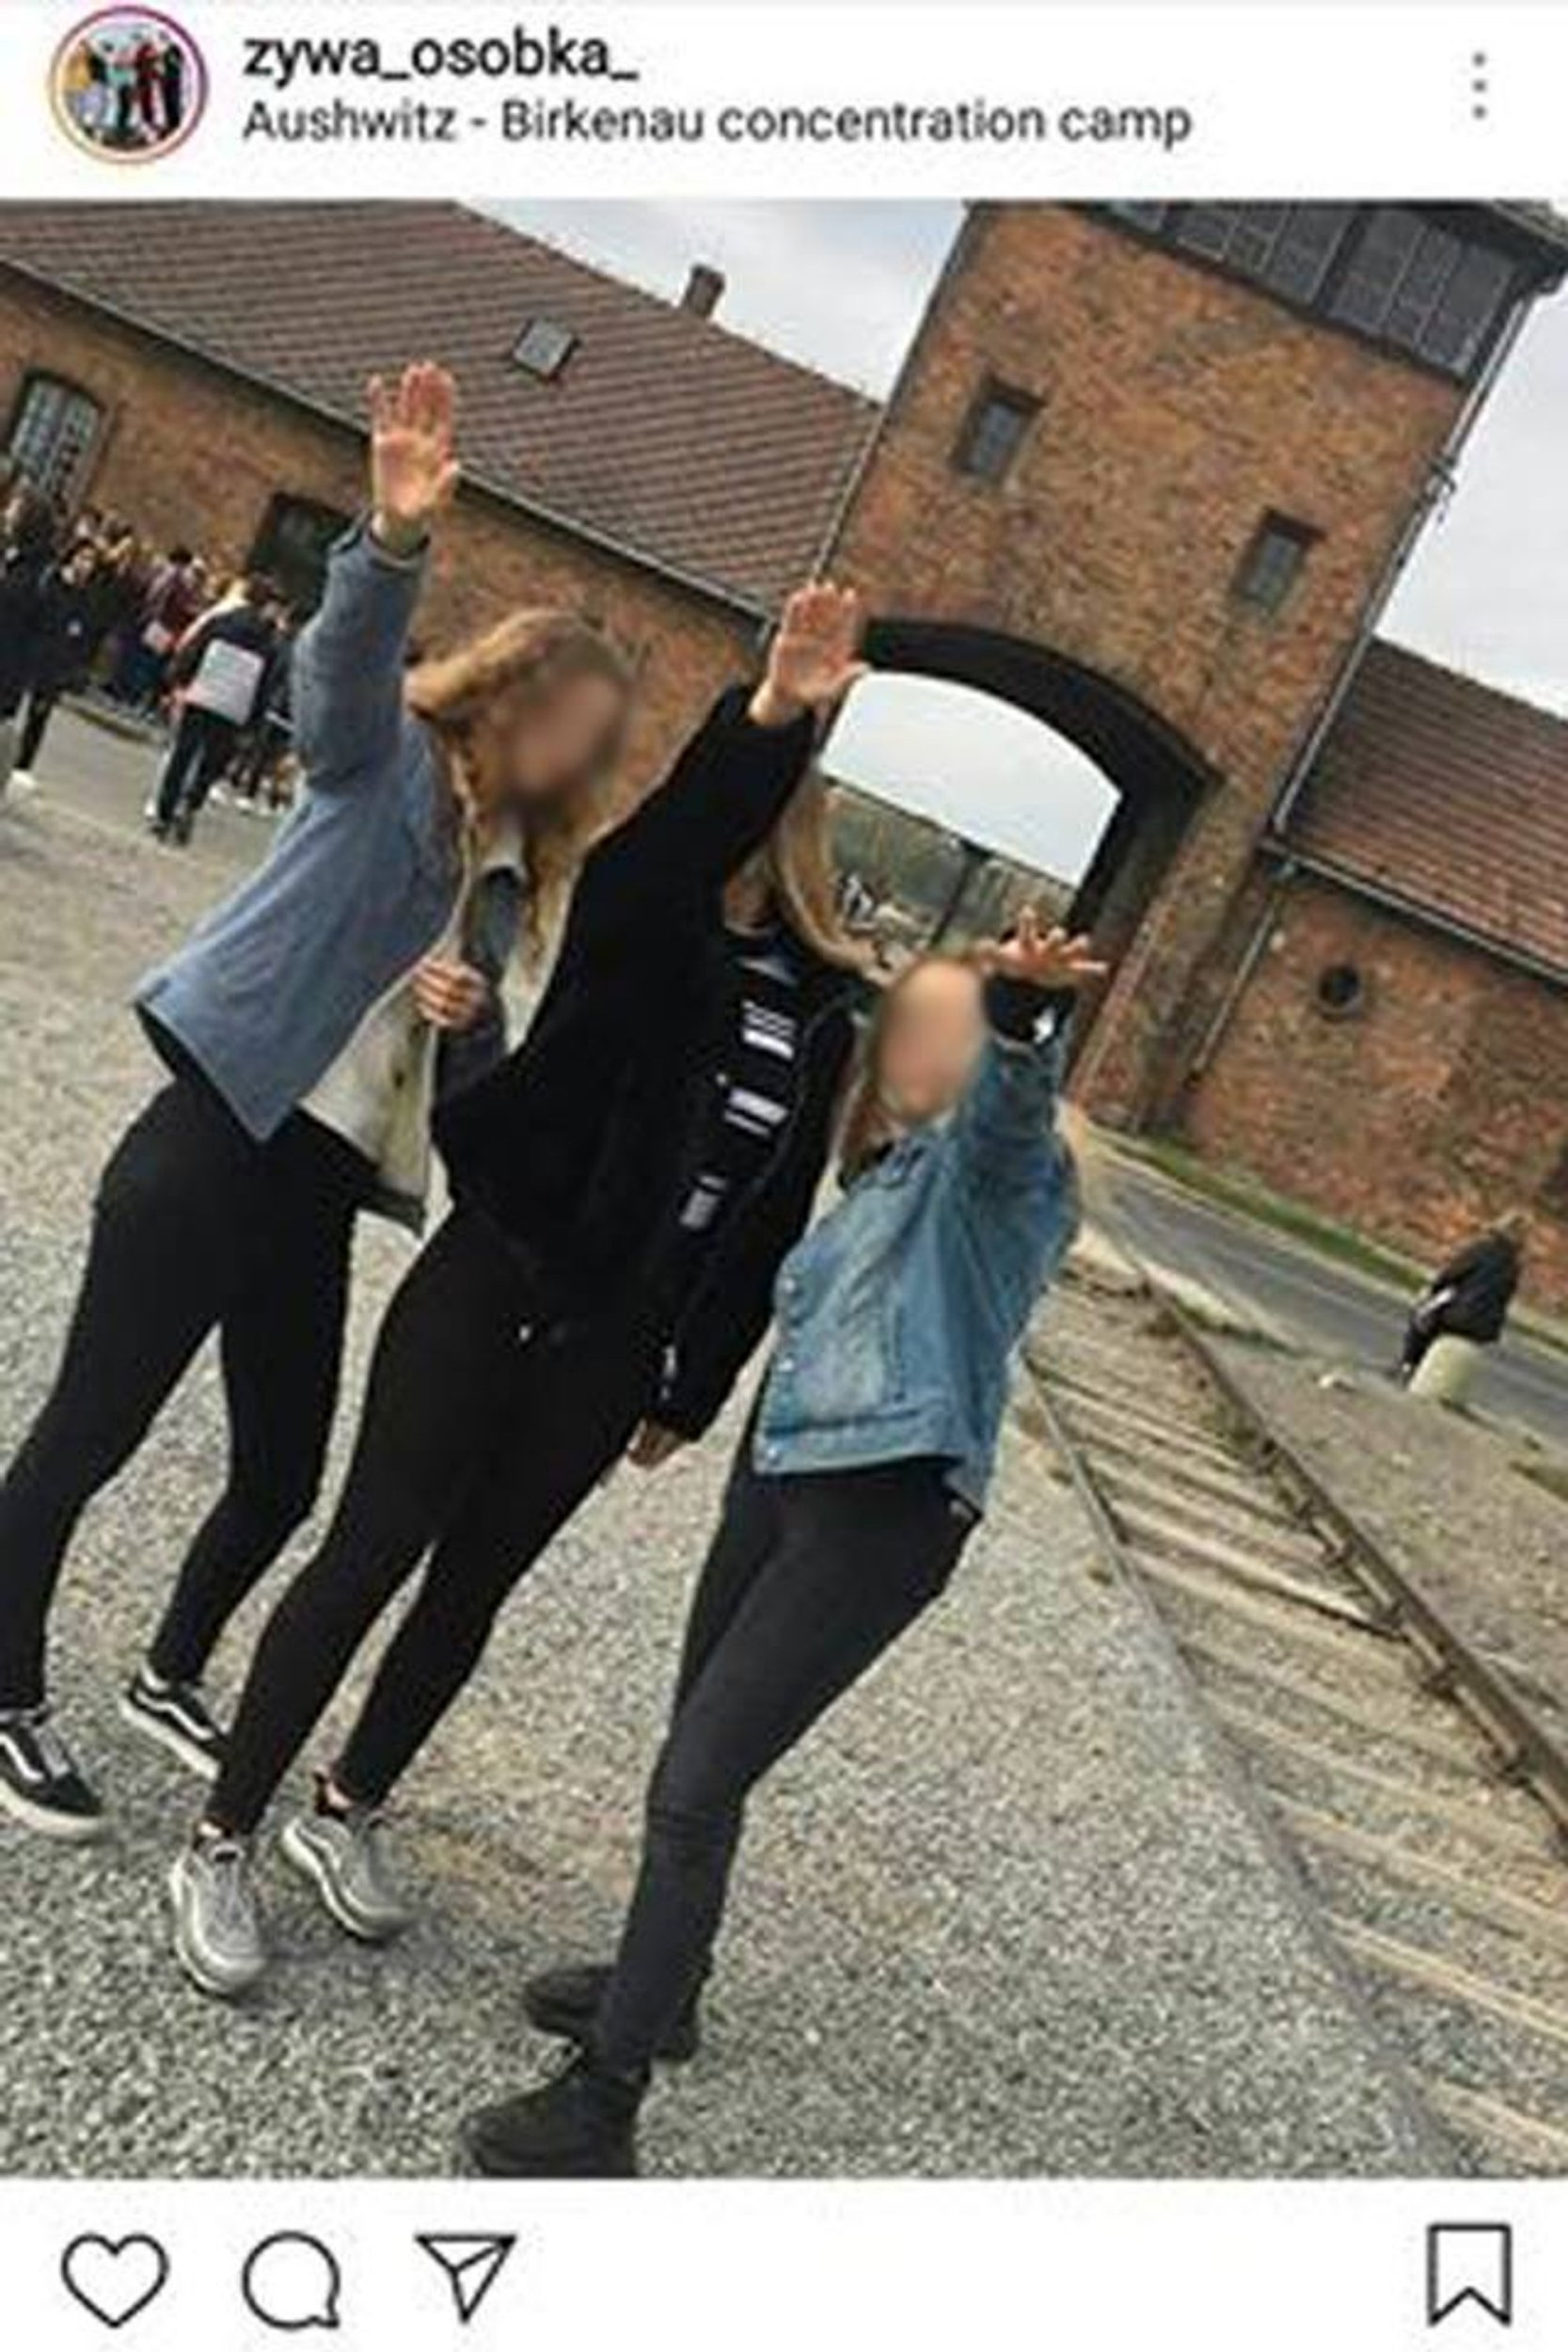 """Pic shows: Three teenagers raising their hands in the Nazi gesture in front of the """"Gate of death"""" in Auschwitz-Birkenau. Auschwitz officials are trying to identify three teenage girls who performed a Nazi salute outside the ???gate of death??? to the World War II concentration camp. According to local media, the girls uploaded the image to Instagram but quickly decided to take it down. However, officials at the Auschwitz-Birkenau Memorial and Museum had already been alerted to the image and informed the public prosecutor???s office. The photo was also shared on Facebook by the group ???Racist and Xenophobic Behaviour Monitoring Centre??? which wrote: """"The girls??? ???prank??? proves how education about the horrors of the Holocaust and totalitarian systems is needed, especially with anti-Semitism growing in Poland."""" The group added that """"young people unknowingly absorb hateful content"""". Local authorities are in the process of identifying the teenagers and their school will be informed about the incident. This is not the only case of Nazi gestures being carried out by ignorant visitors of the Auschwitz II-Birkenau concentration camp. In 2017, a group of Swedish teenagers were filmed making inappropriate gestures and remarks while visiting the memorial complex. Meanwhile, an Israeli student ended up in hot water when he dropped his trousers at the Majdanek concentration camp close to the Polish capital Warsaw. In that case, the Israeli Ministry of Education intervened and made the culprit pay a 250 GBP fine."""